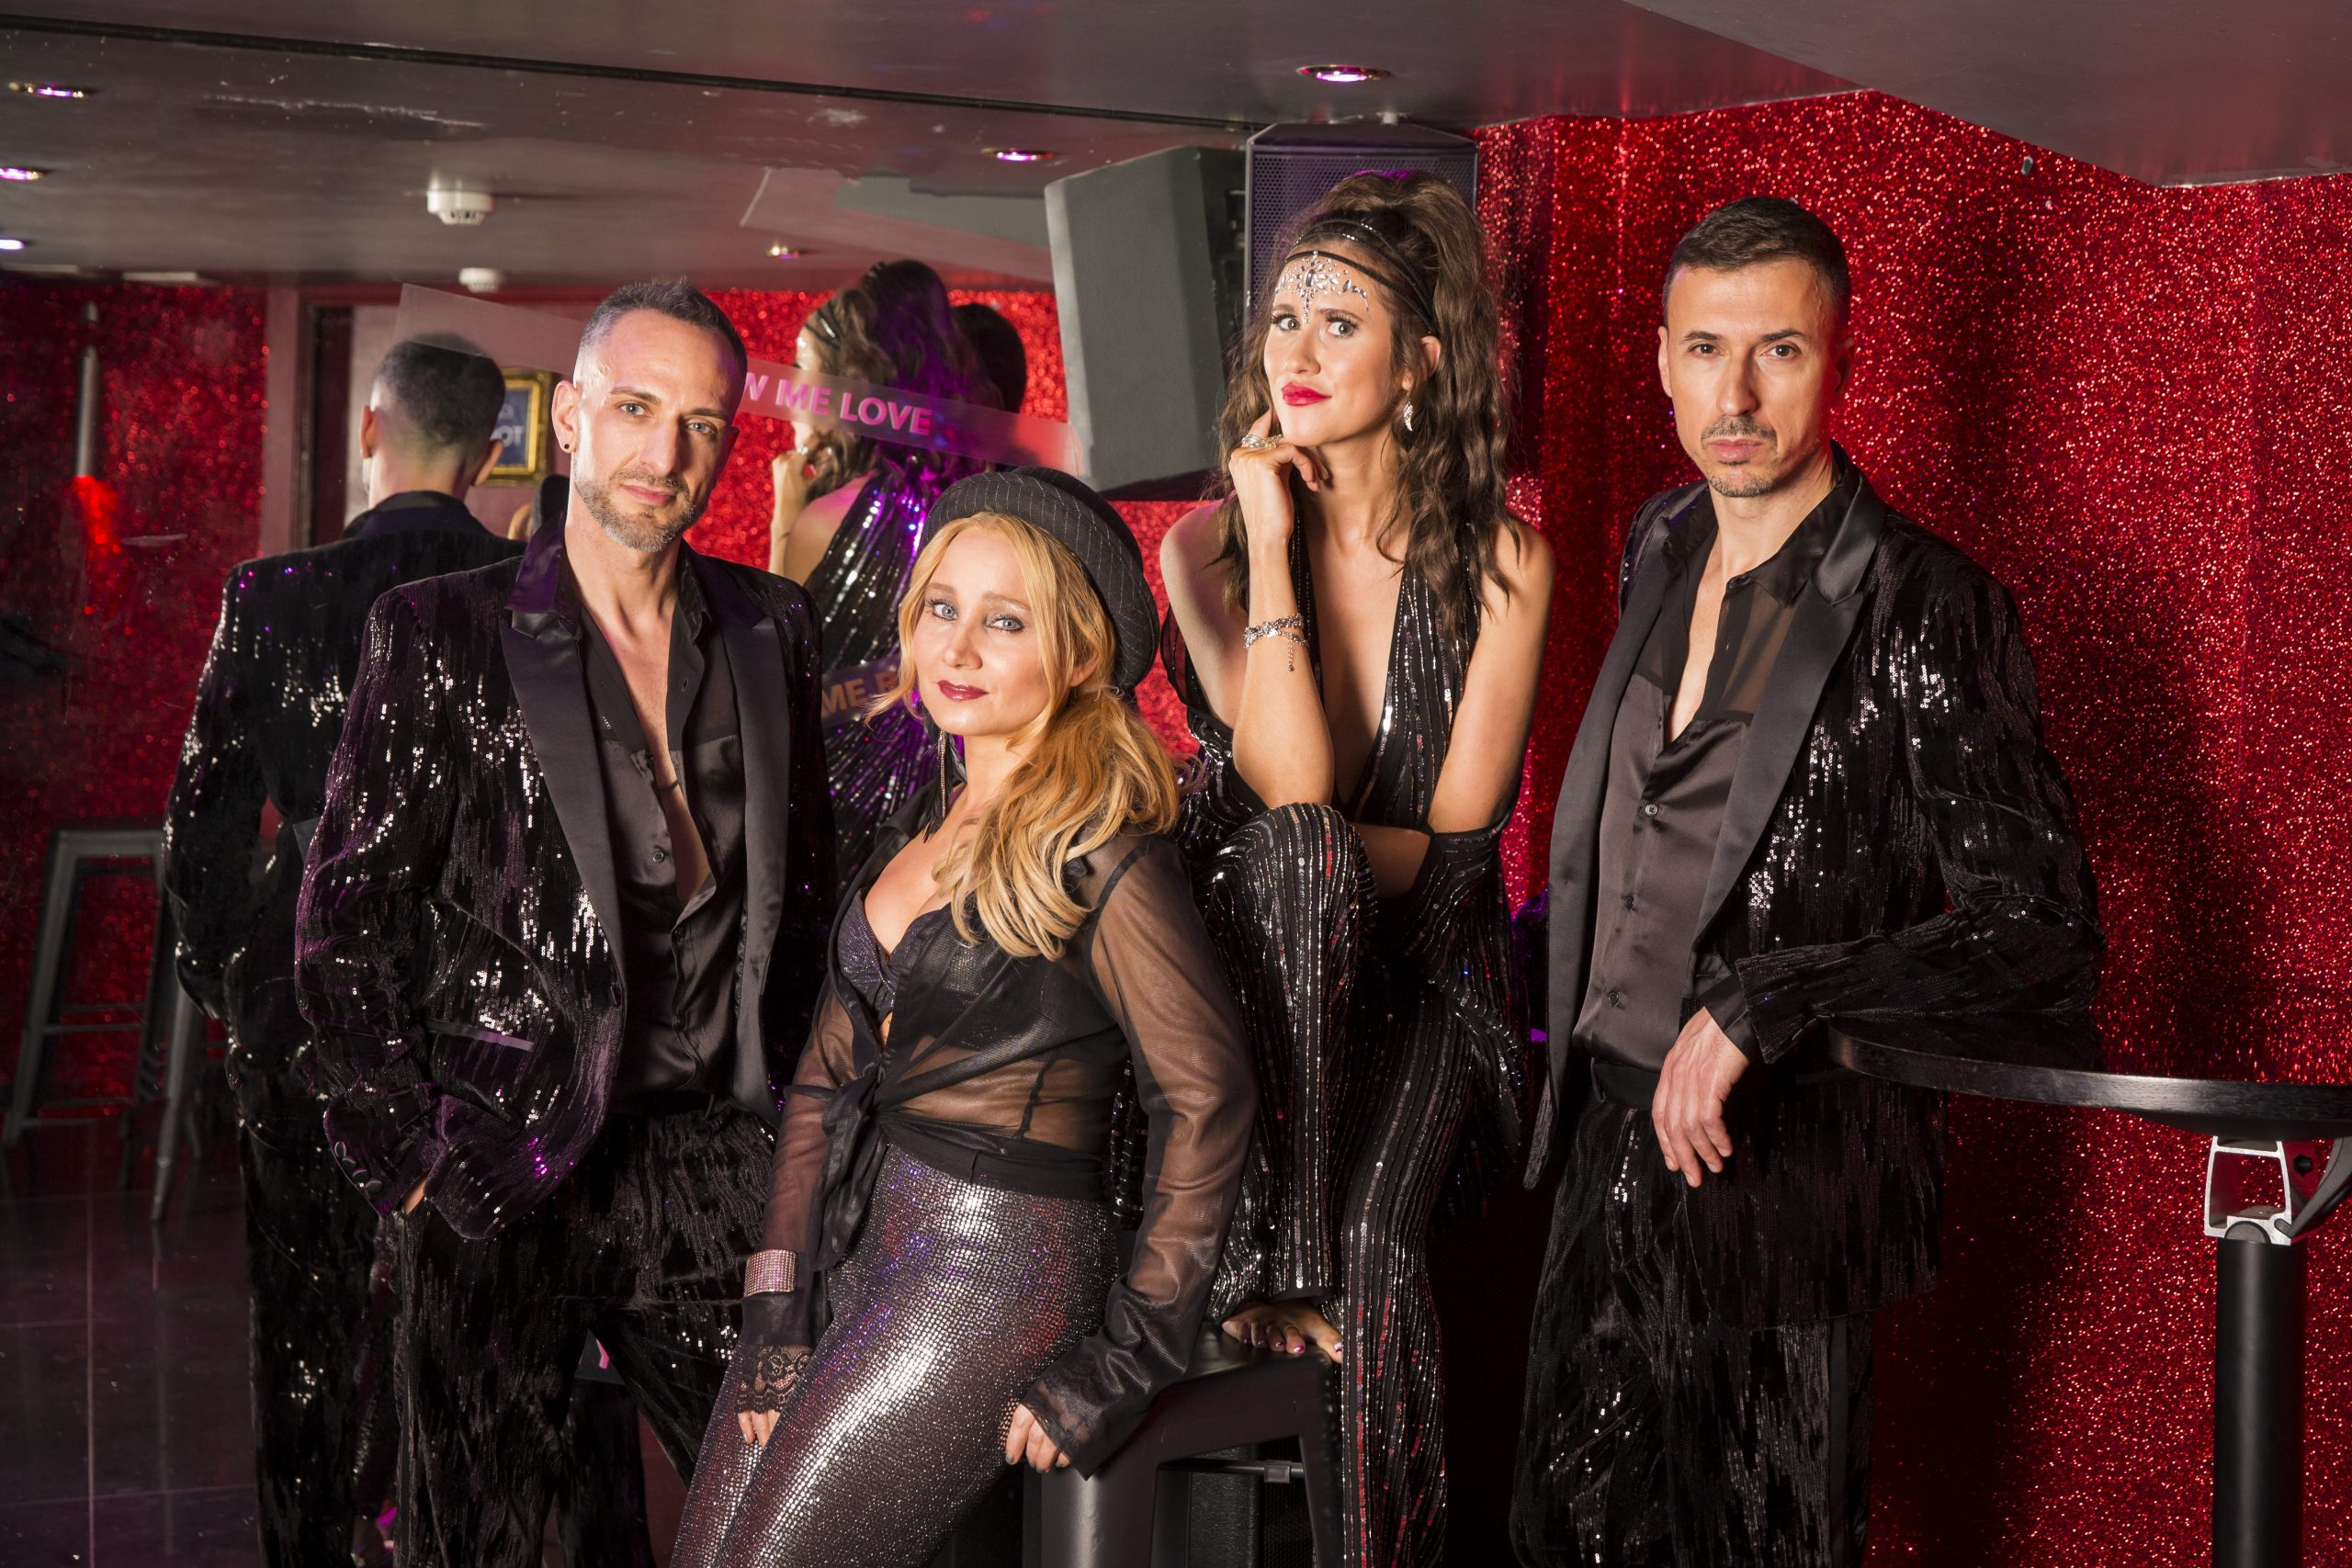 Four piece band, two male and two female in dark sequin show costumes